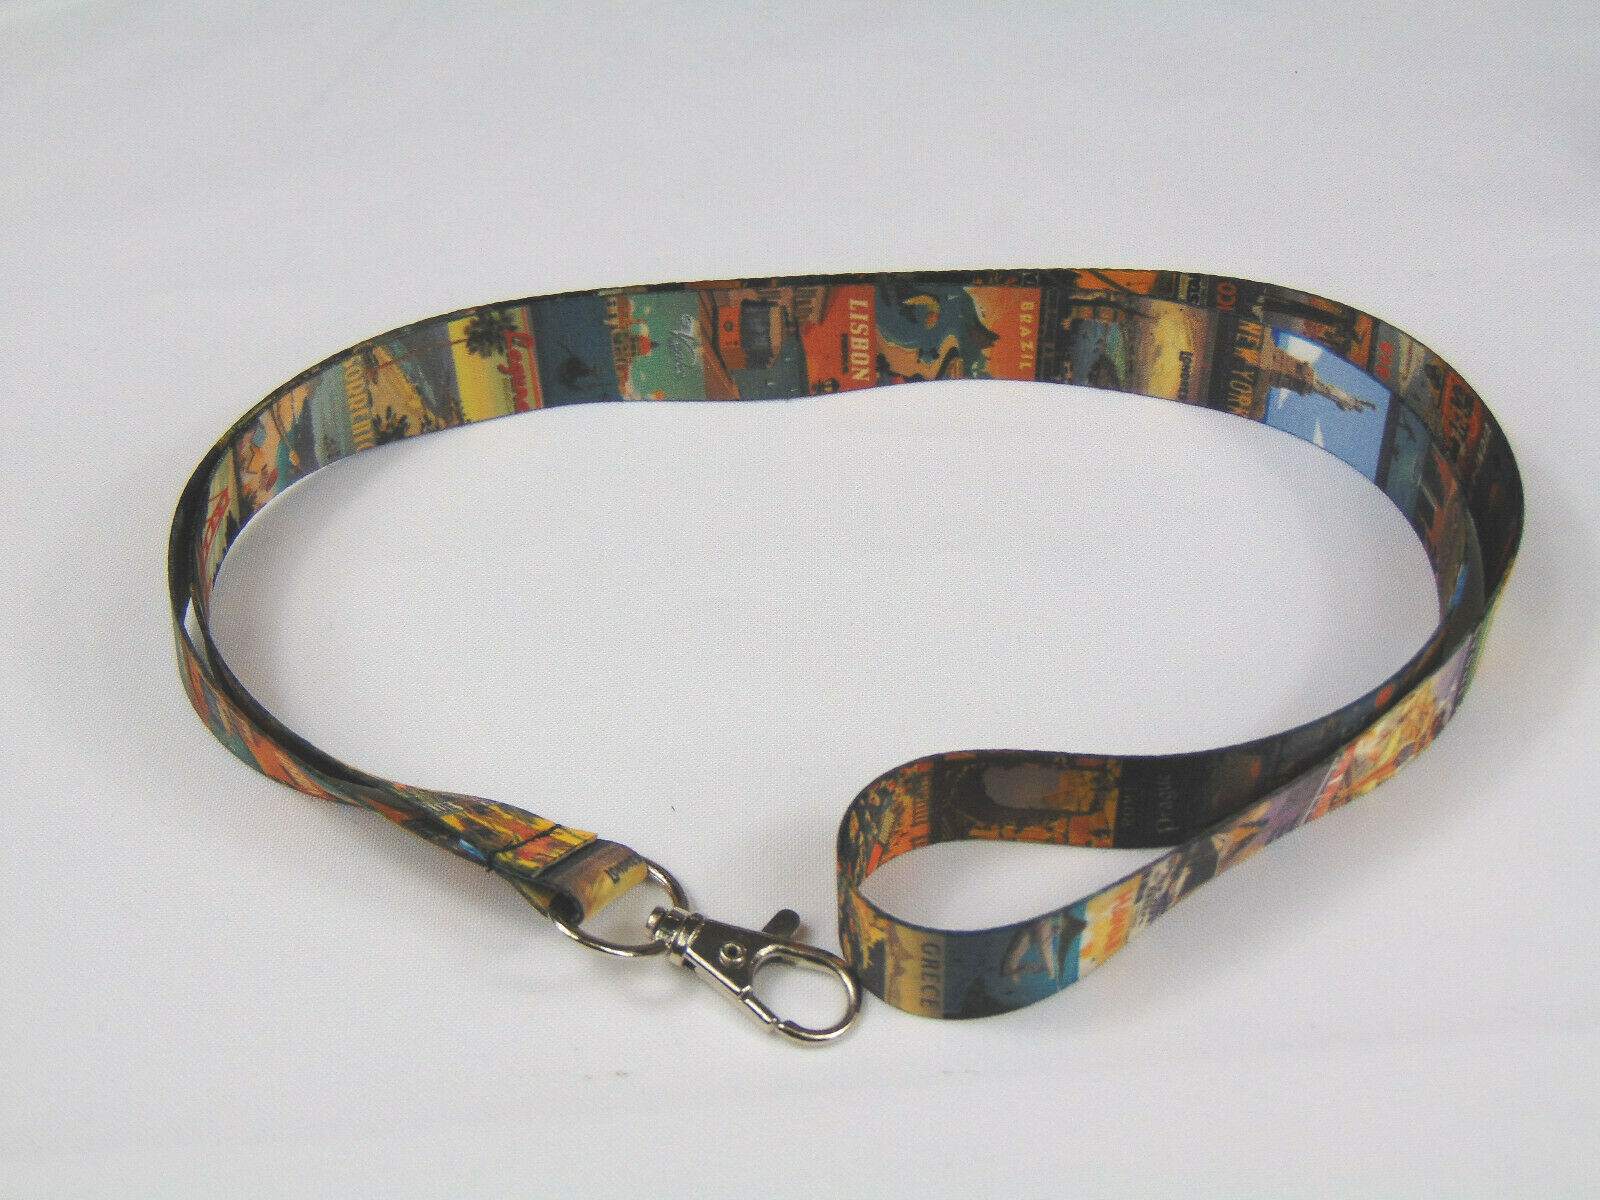 A vintage travel printed neck strap lanyard for ID, keys etc. Made in the UK.